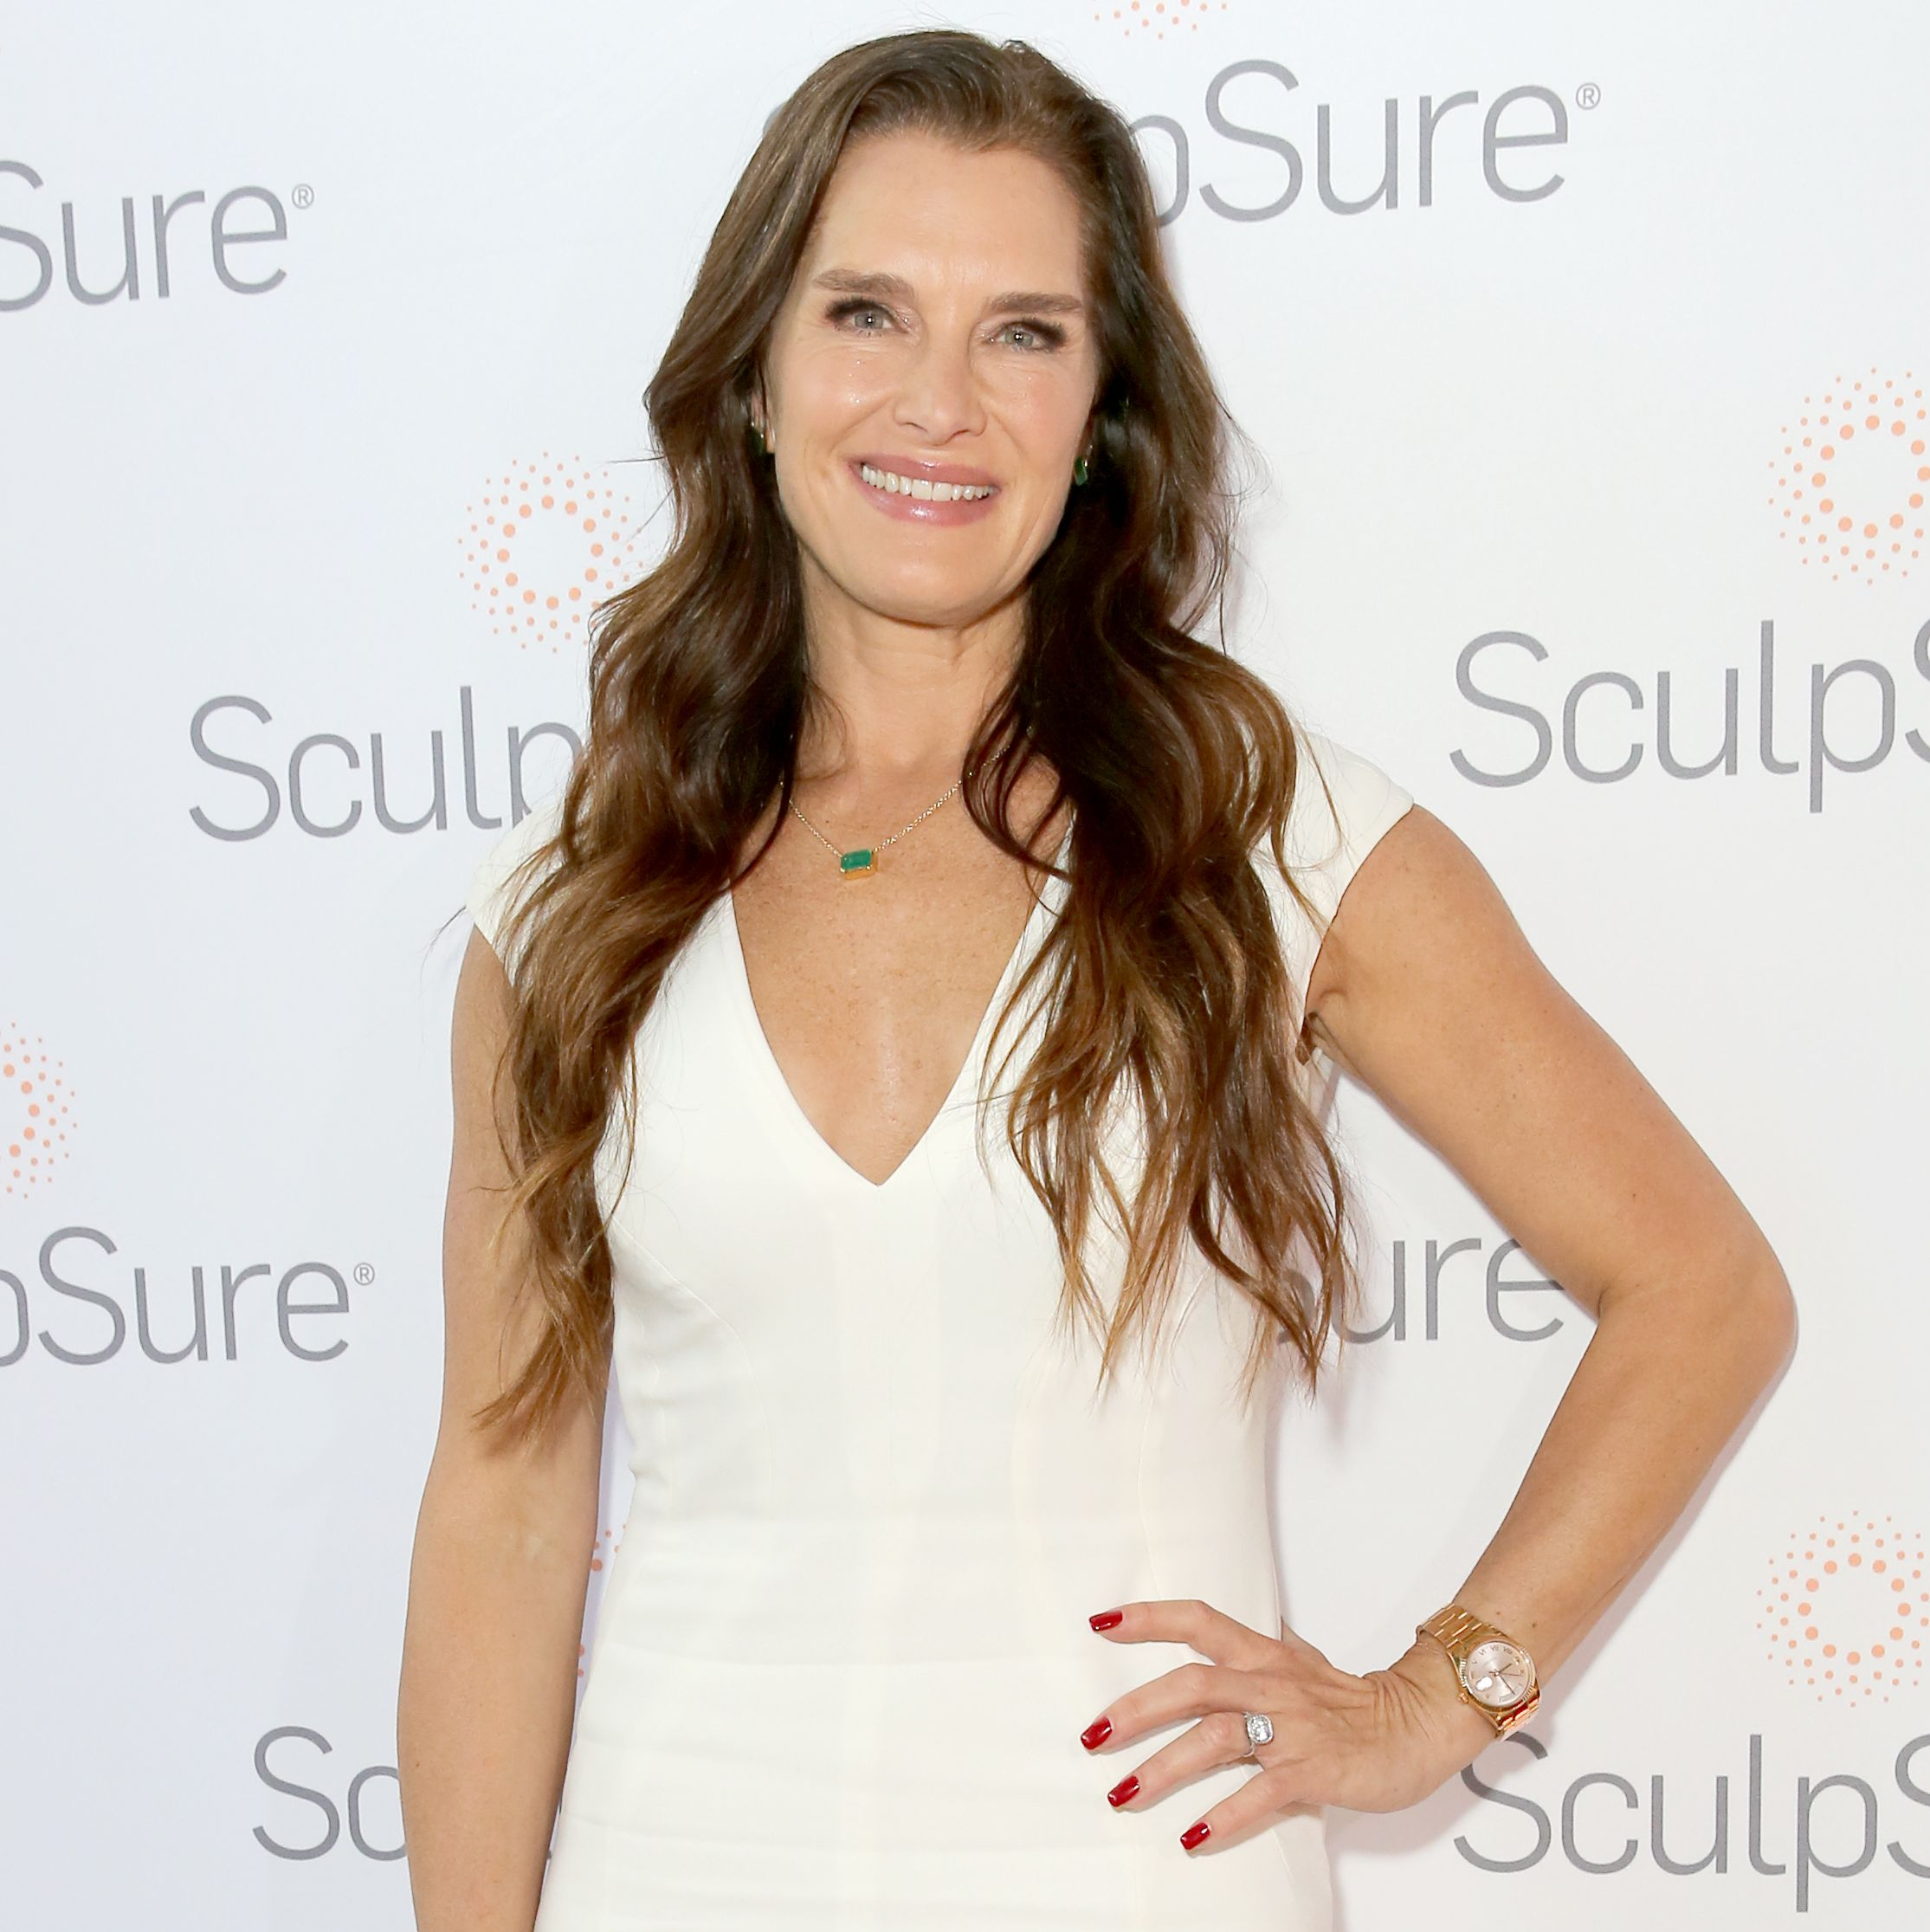 Brooke Shields Says She Got Rid of Her 'Love Handles' With Laser Treatment